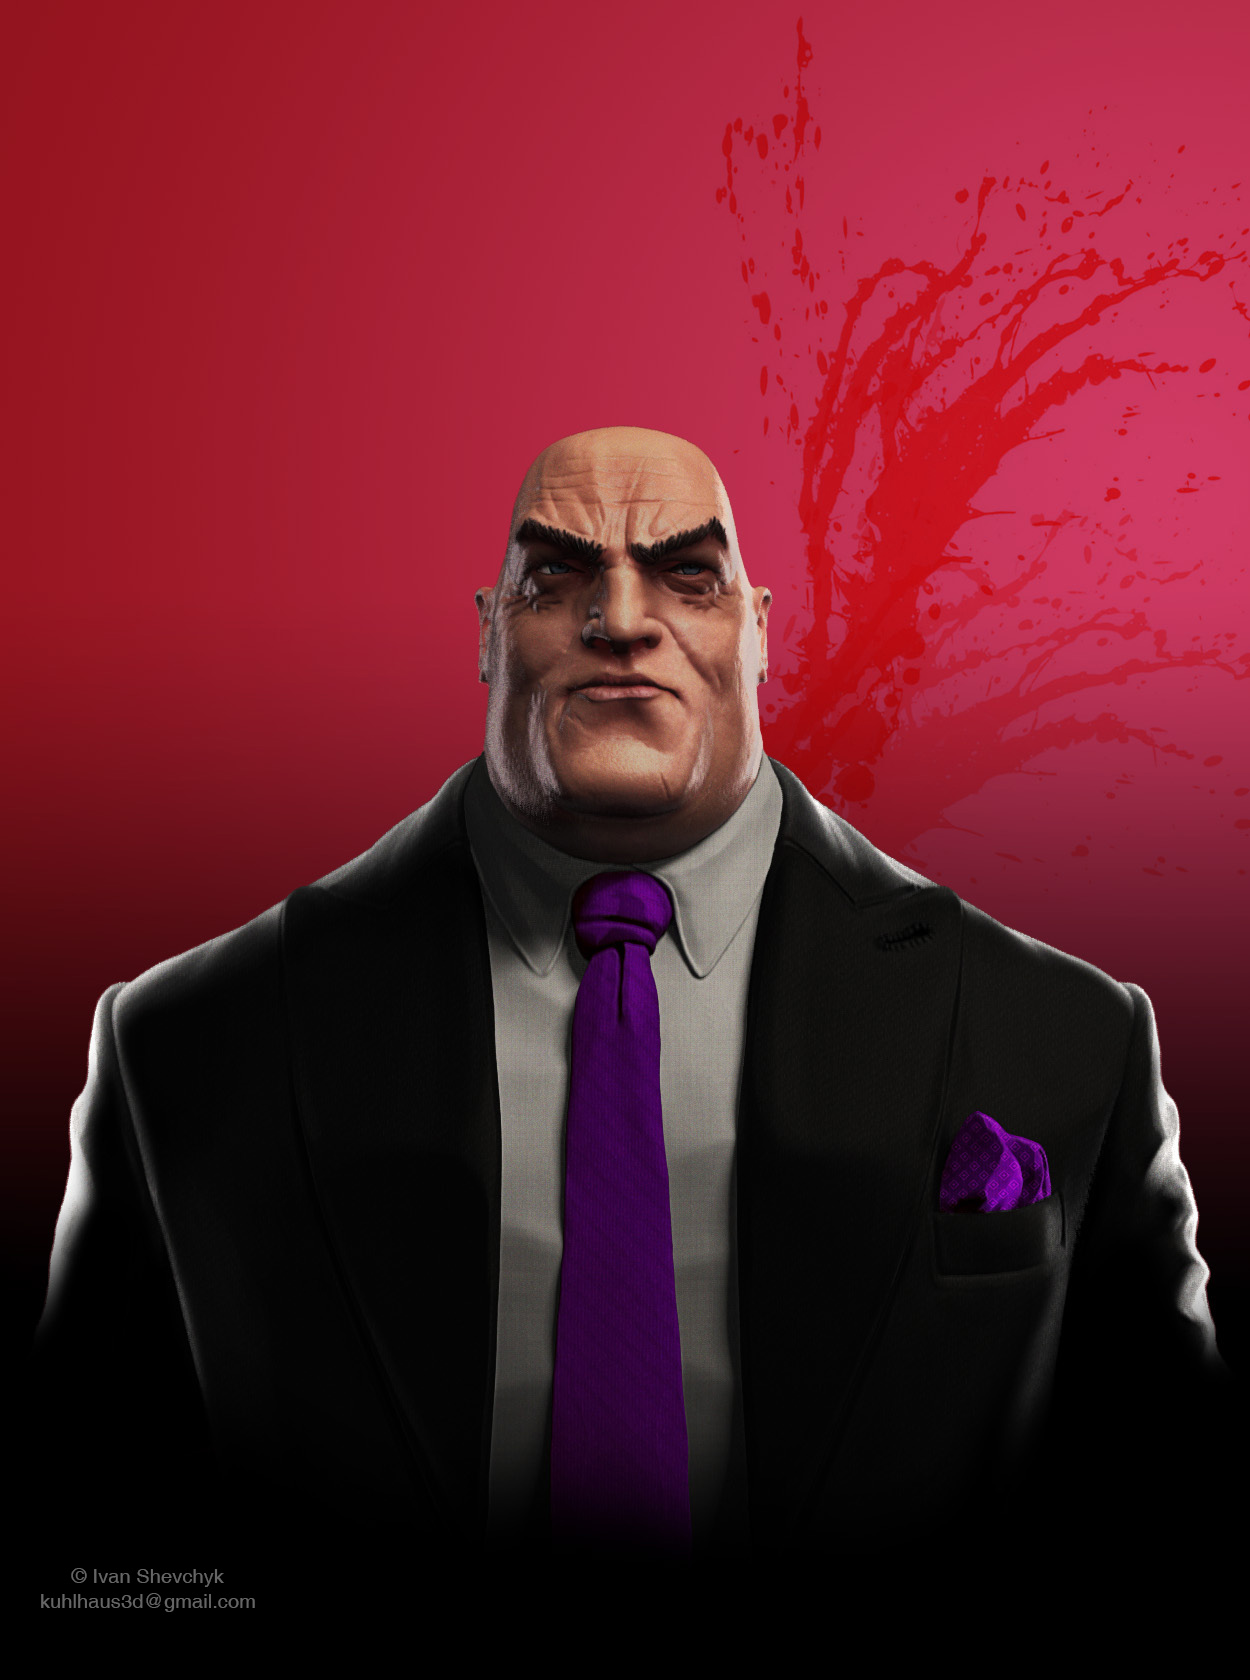 Kingpin_by_kuhlhaus3d_main.jpg